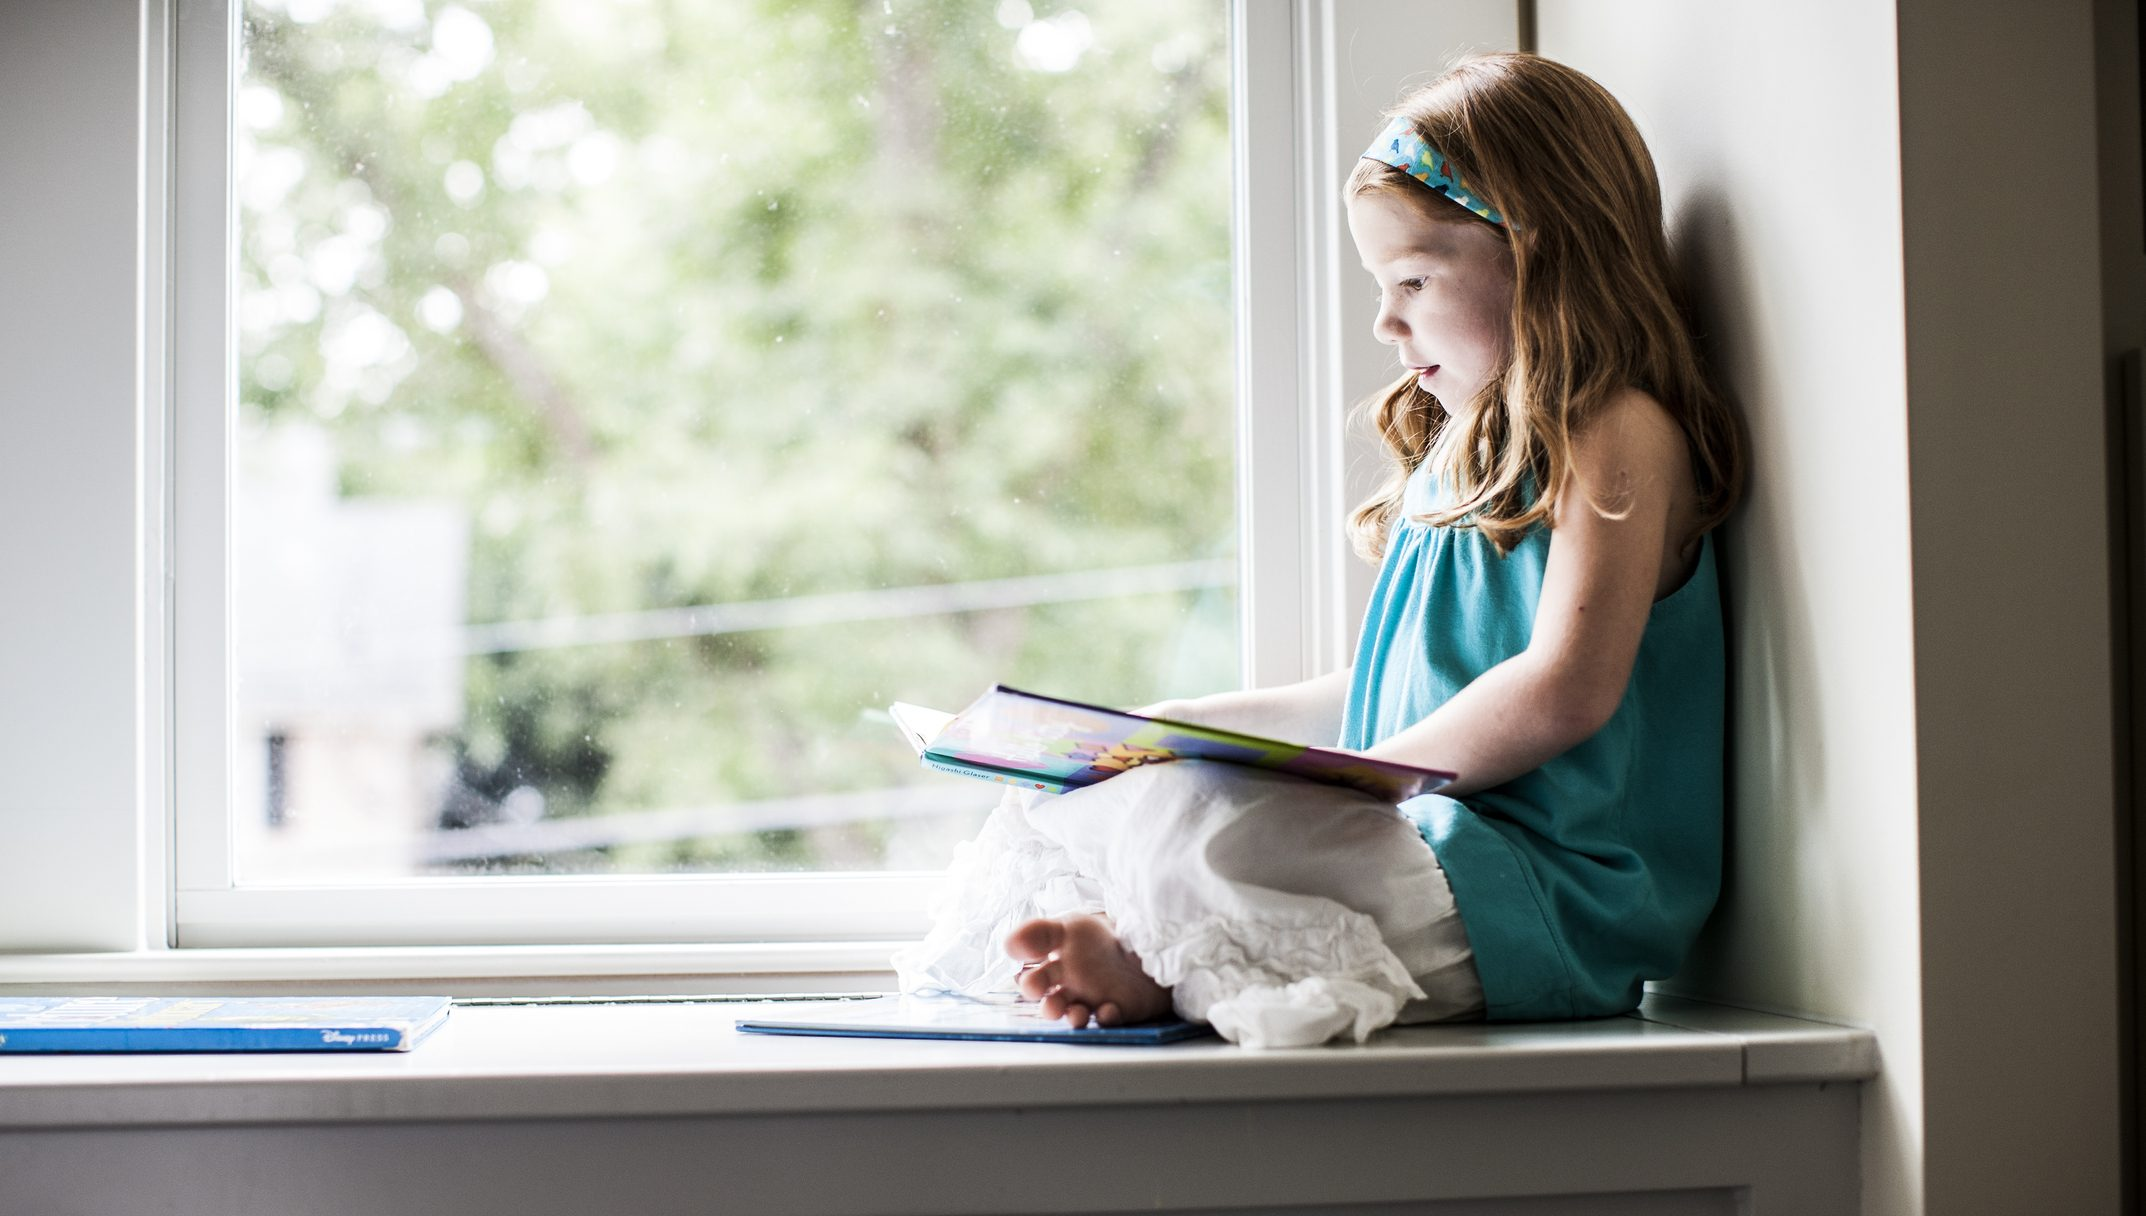 Girl (6yrs) sitting in window reading a book